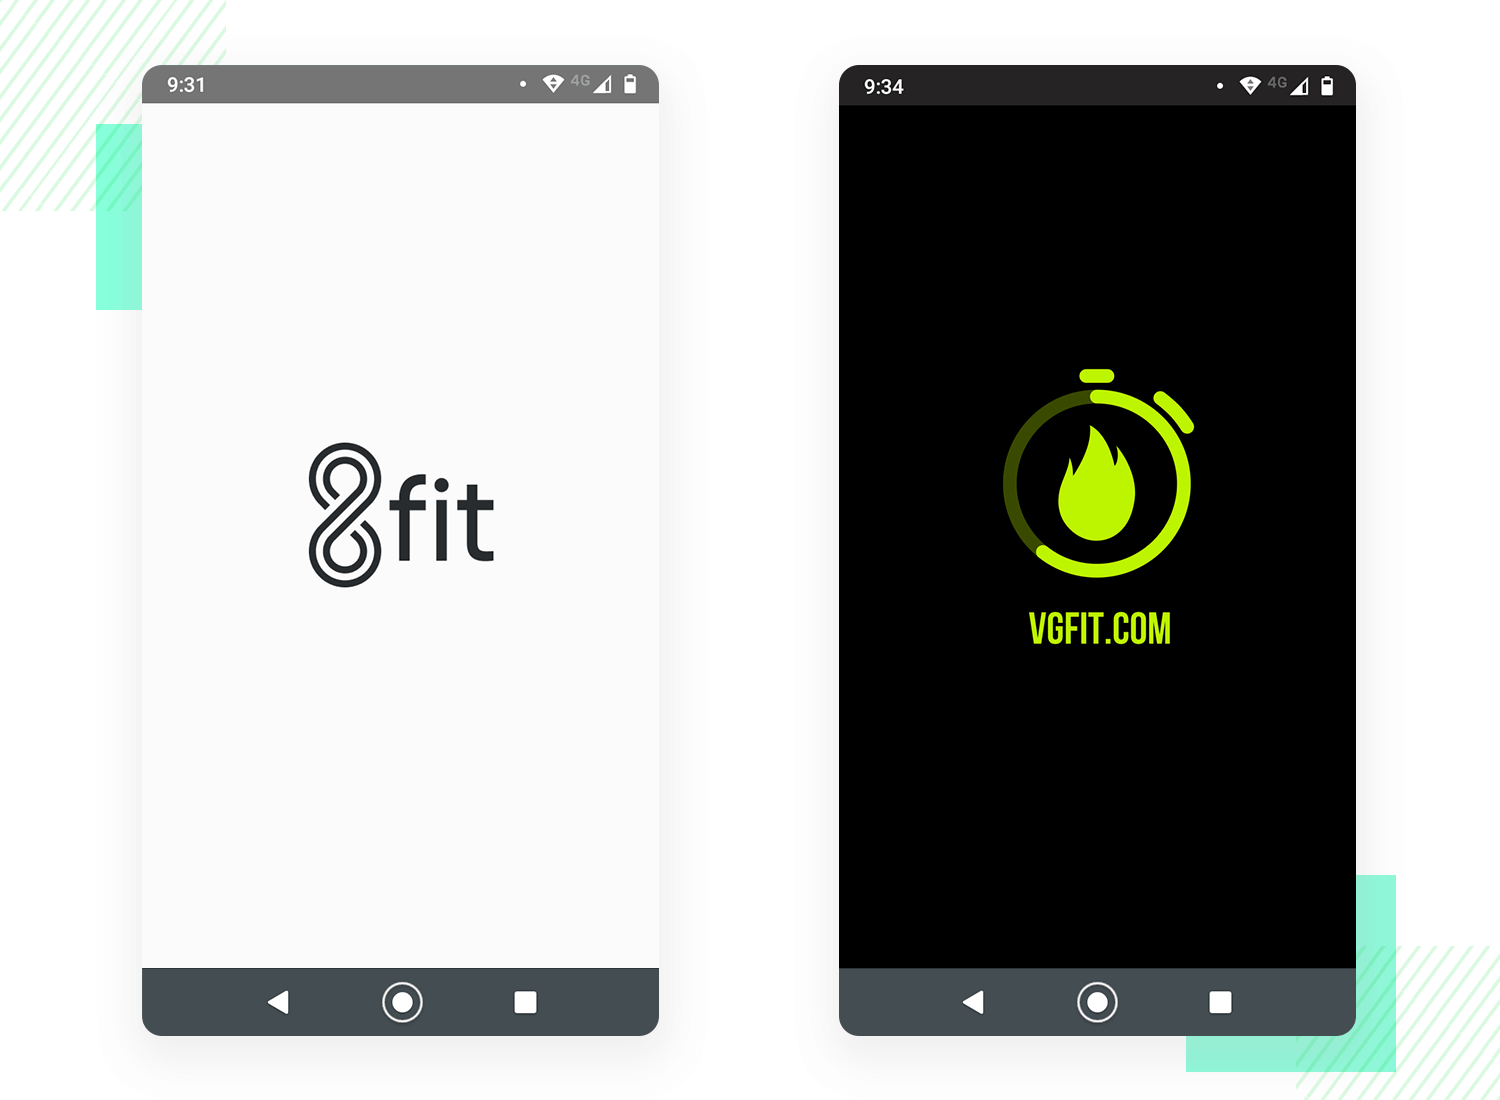 splash screens by fitness apps - 8fit and vg-fit